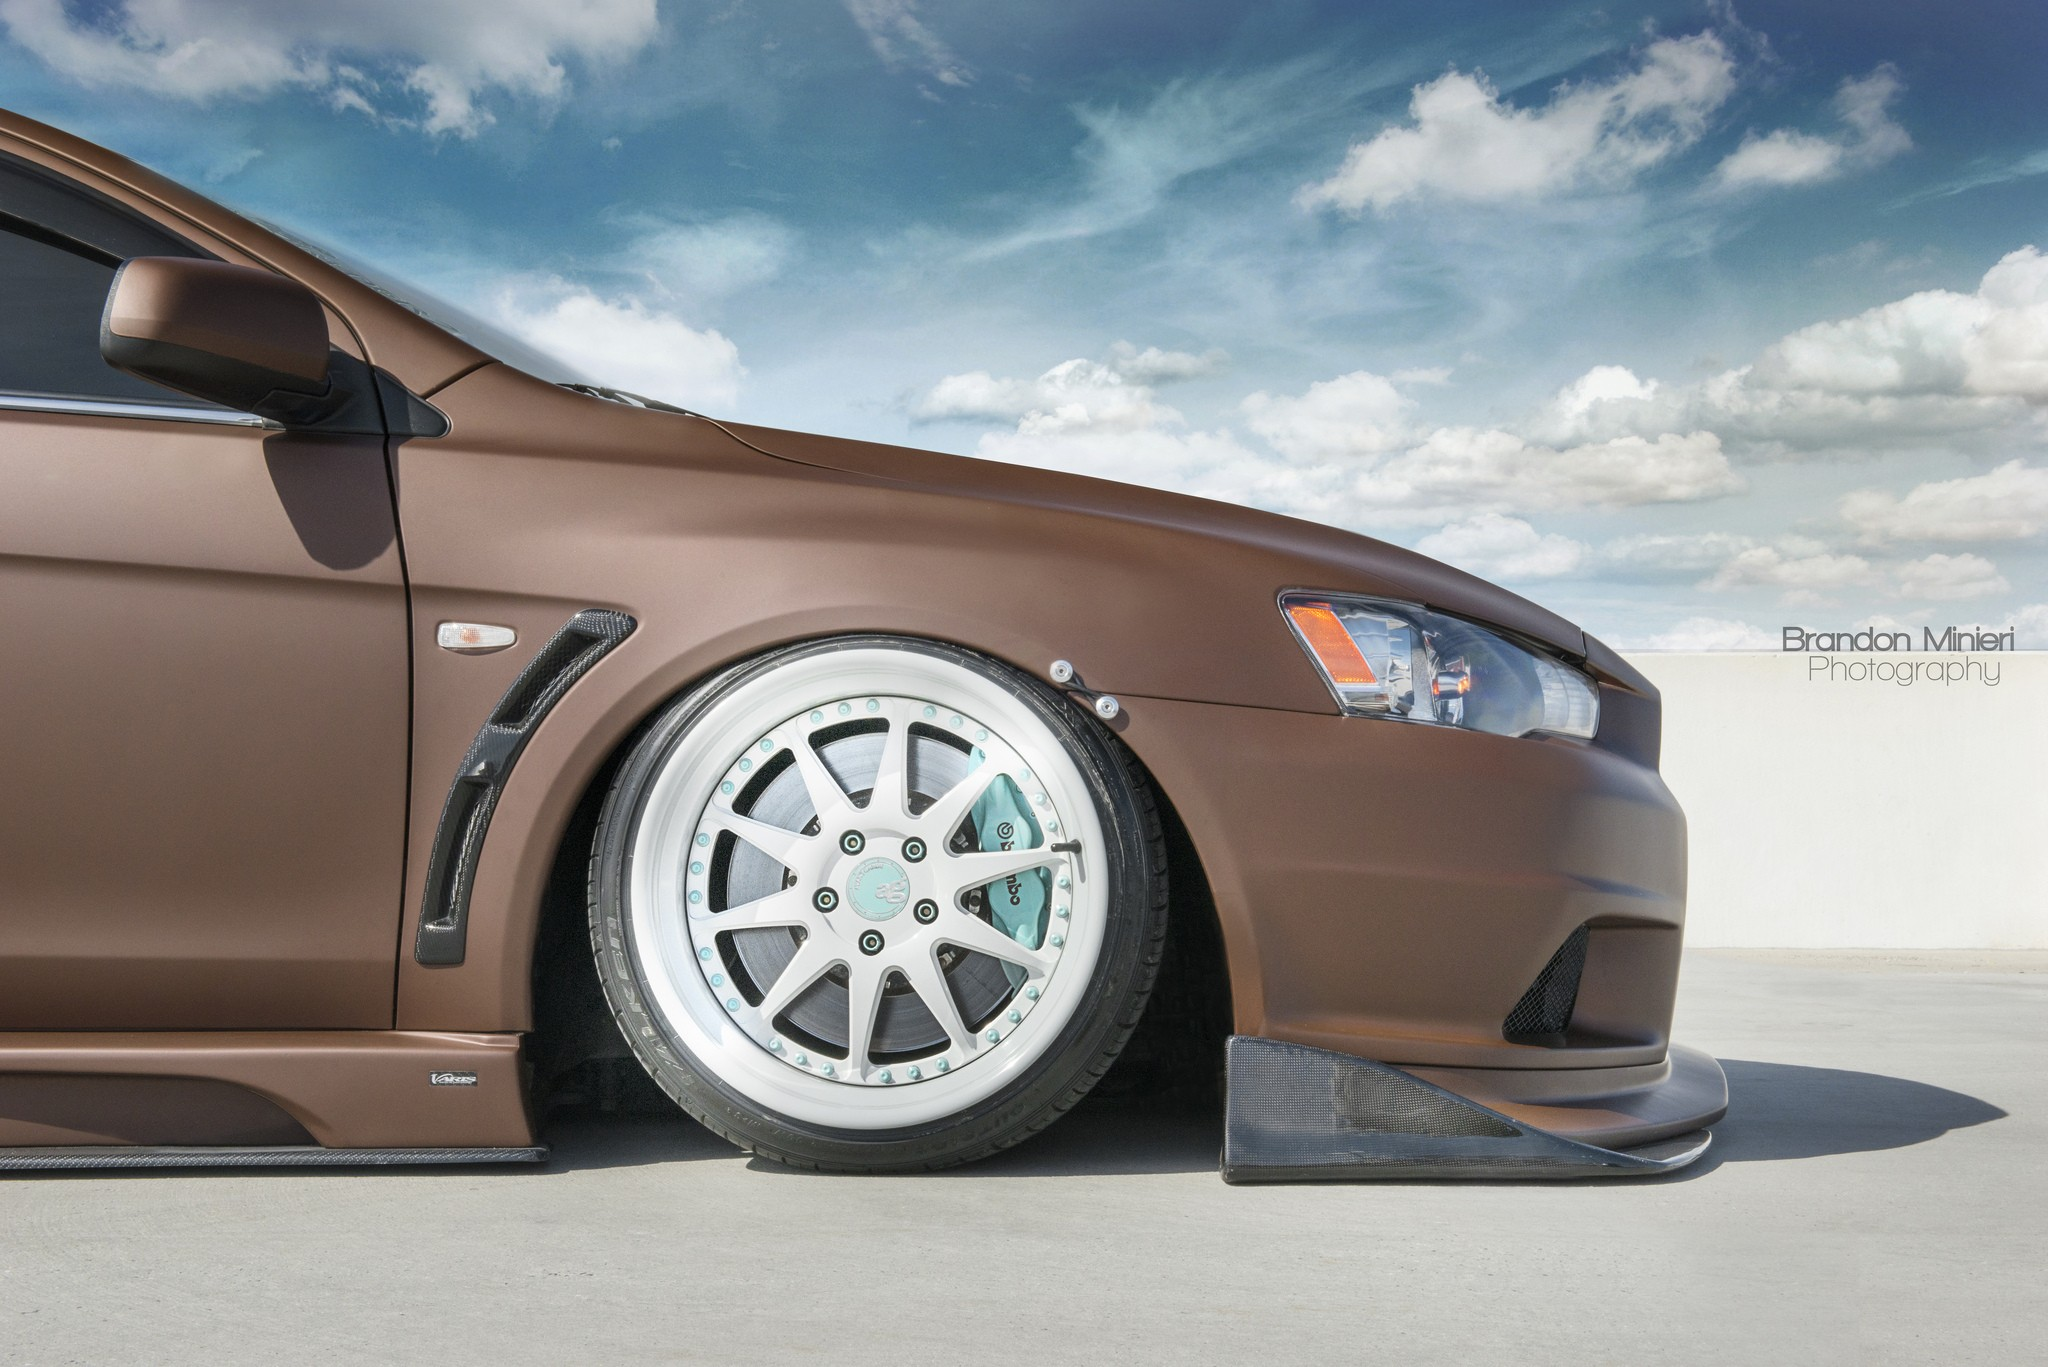 General 2048x1367 Mitsubishi Lancer Evo X Mitsubishi Lancer Mitsubishi chocolate car vehicle colored wheels wheels